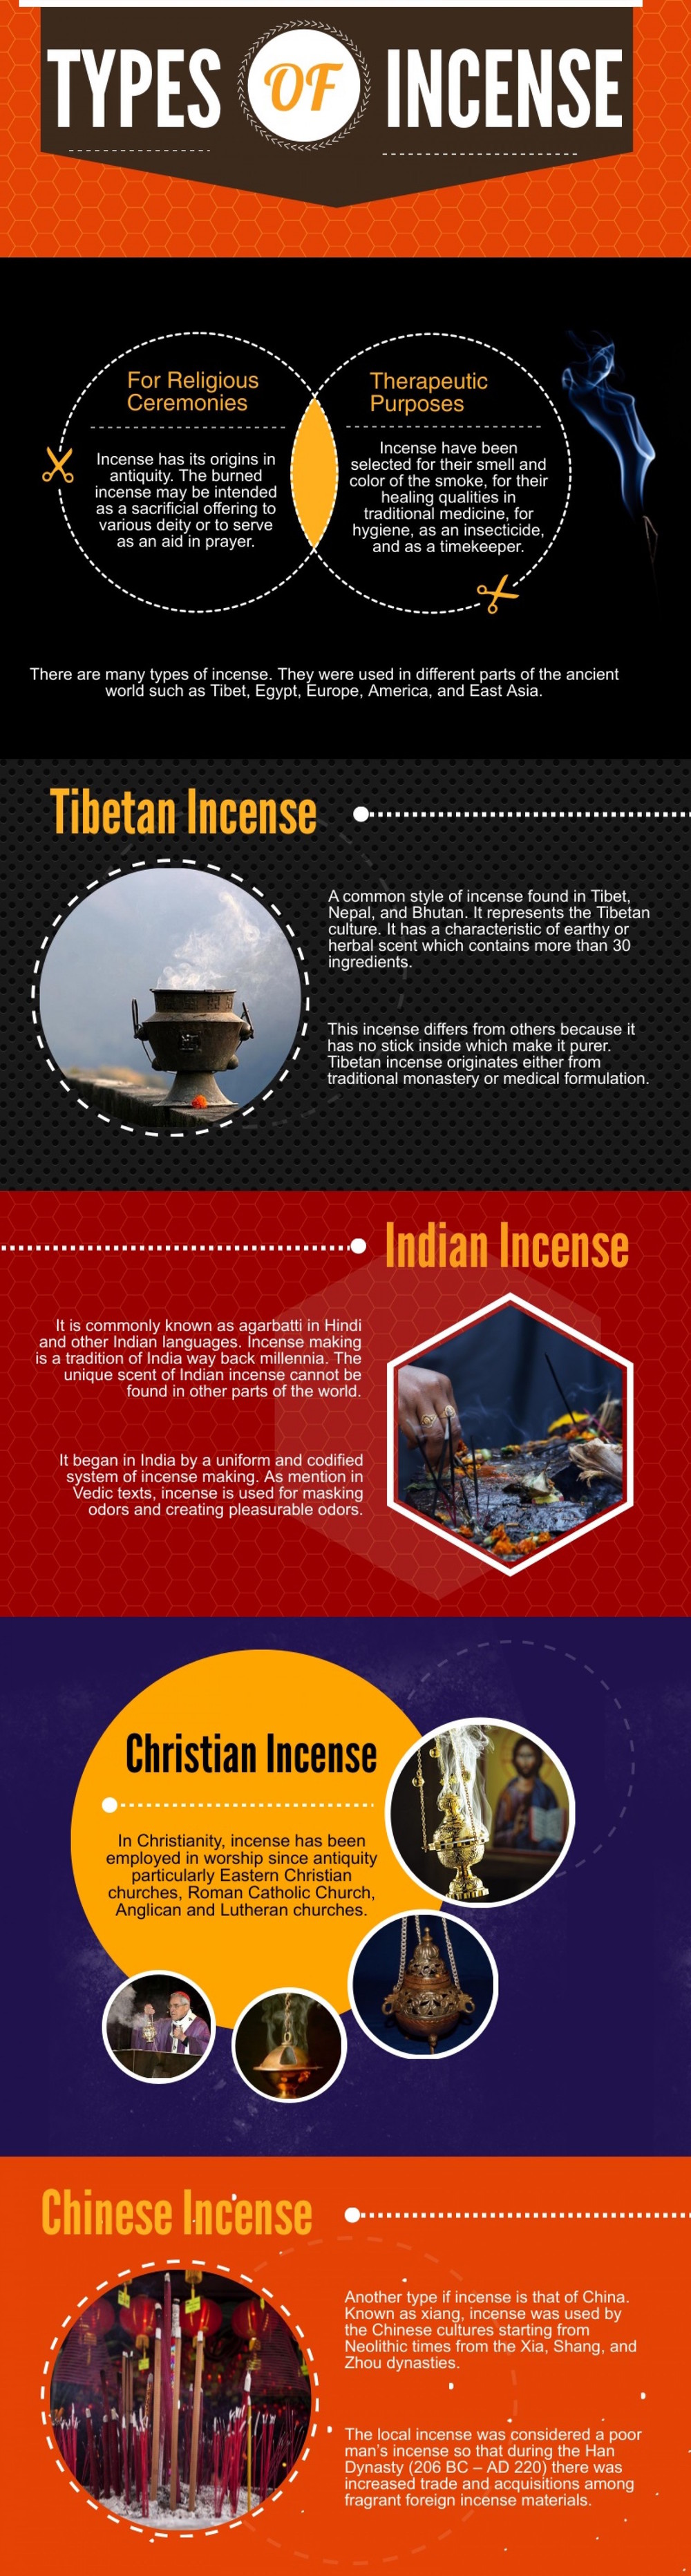 incenseinfographic